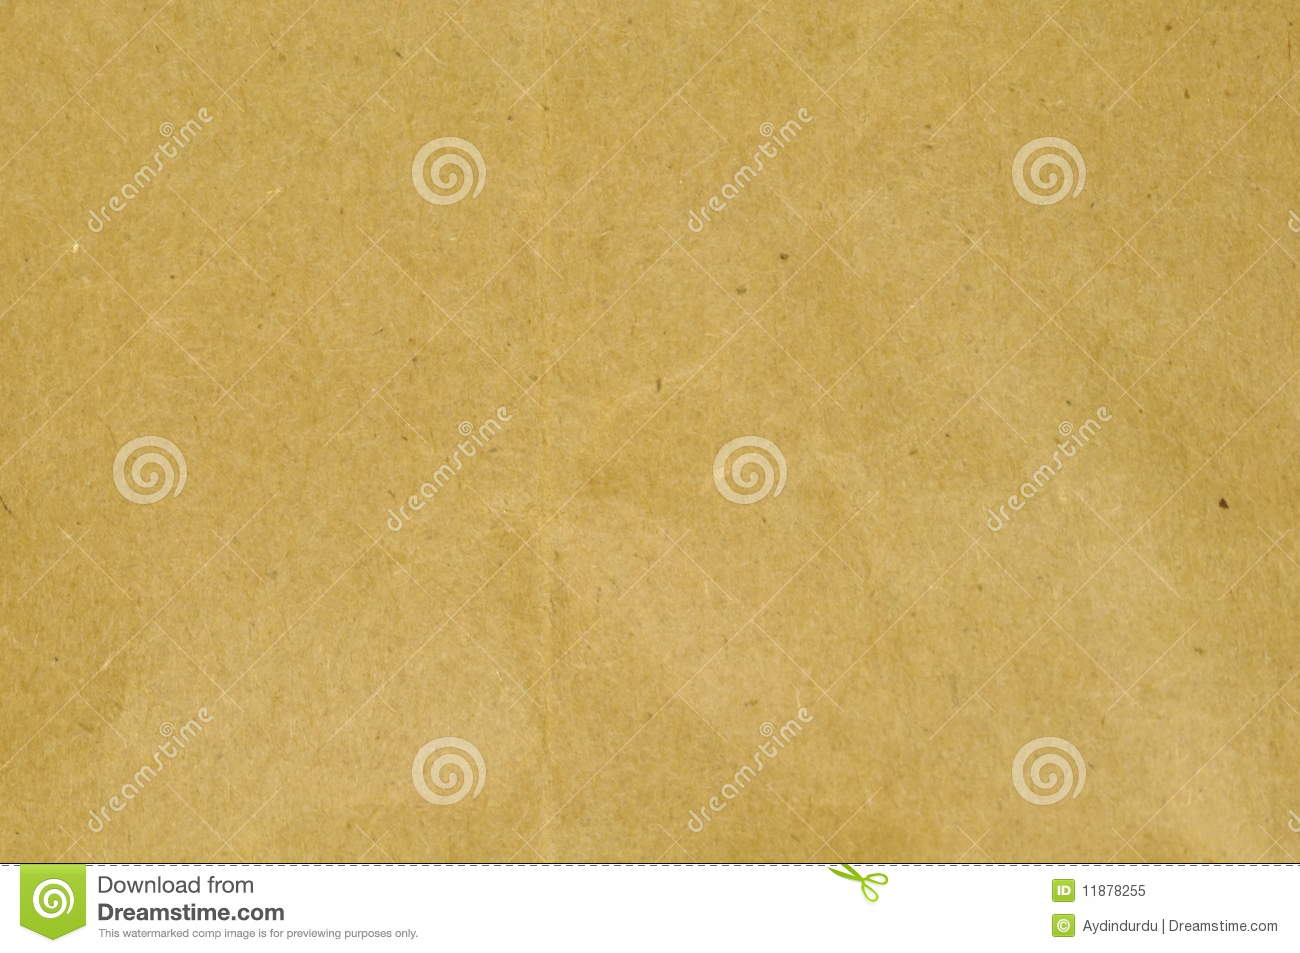 Brown Craft Paper Royalty Free Stock Photo - Image: 11878255